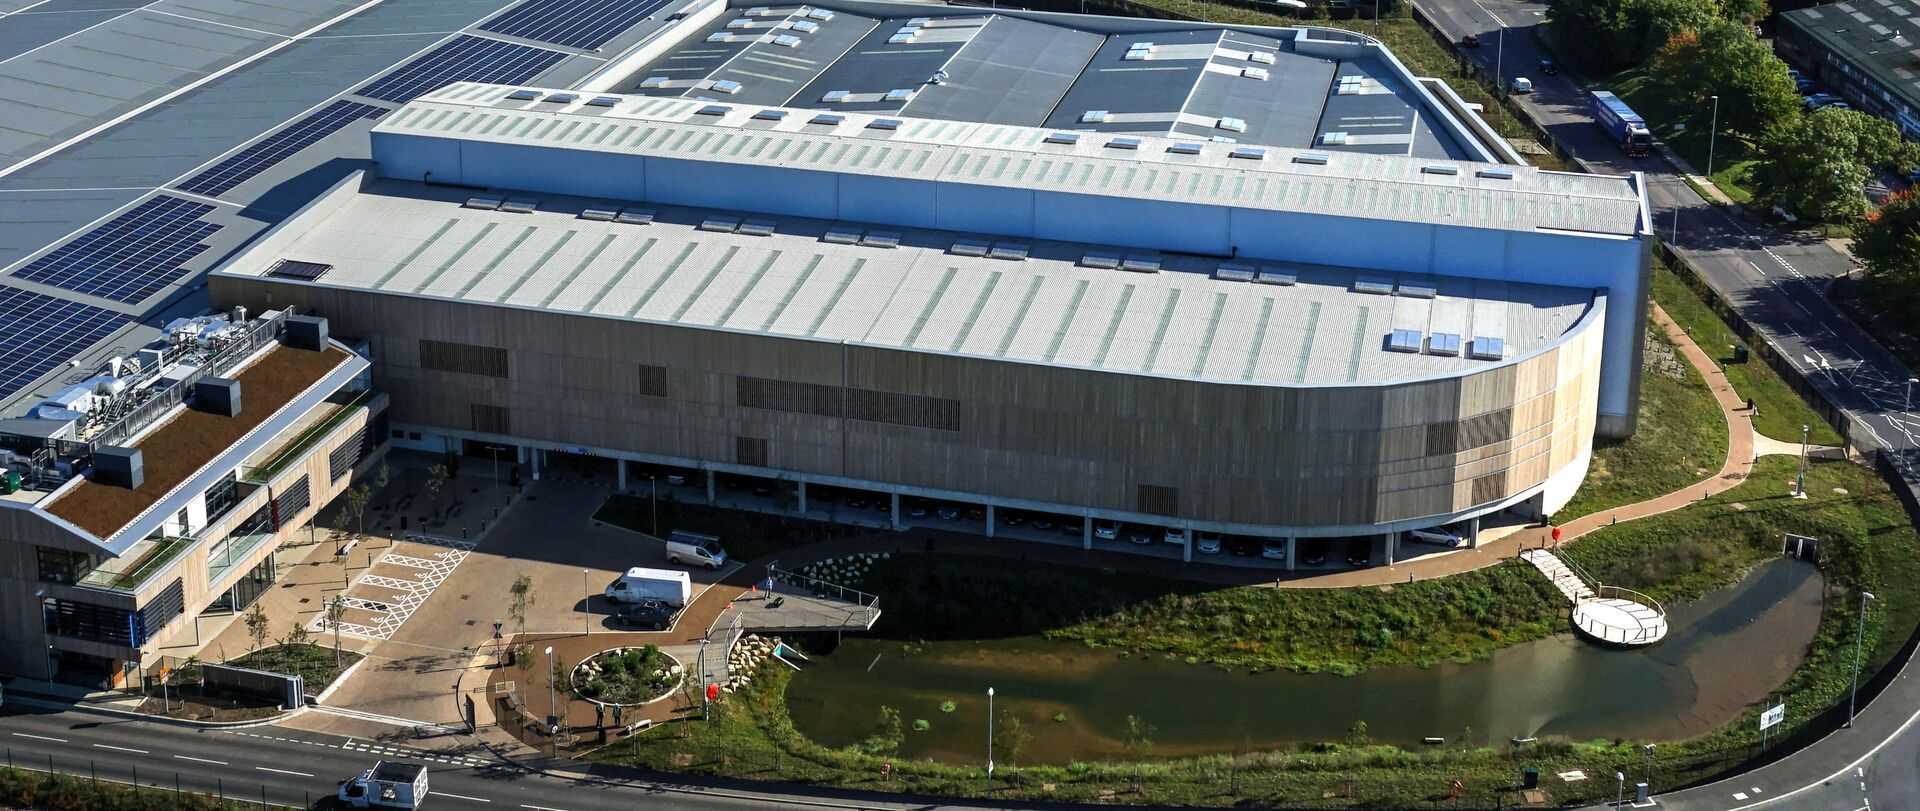 Tovi Eco Park using Tata Steel Trisobuild roof cladding